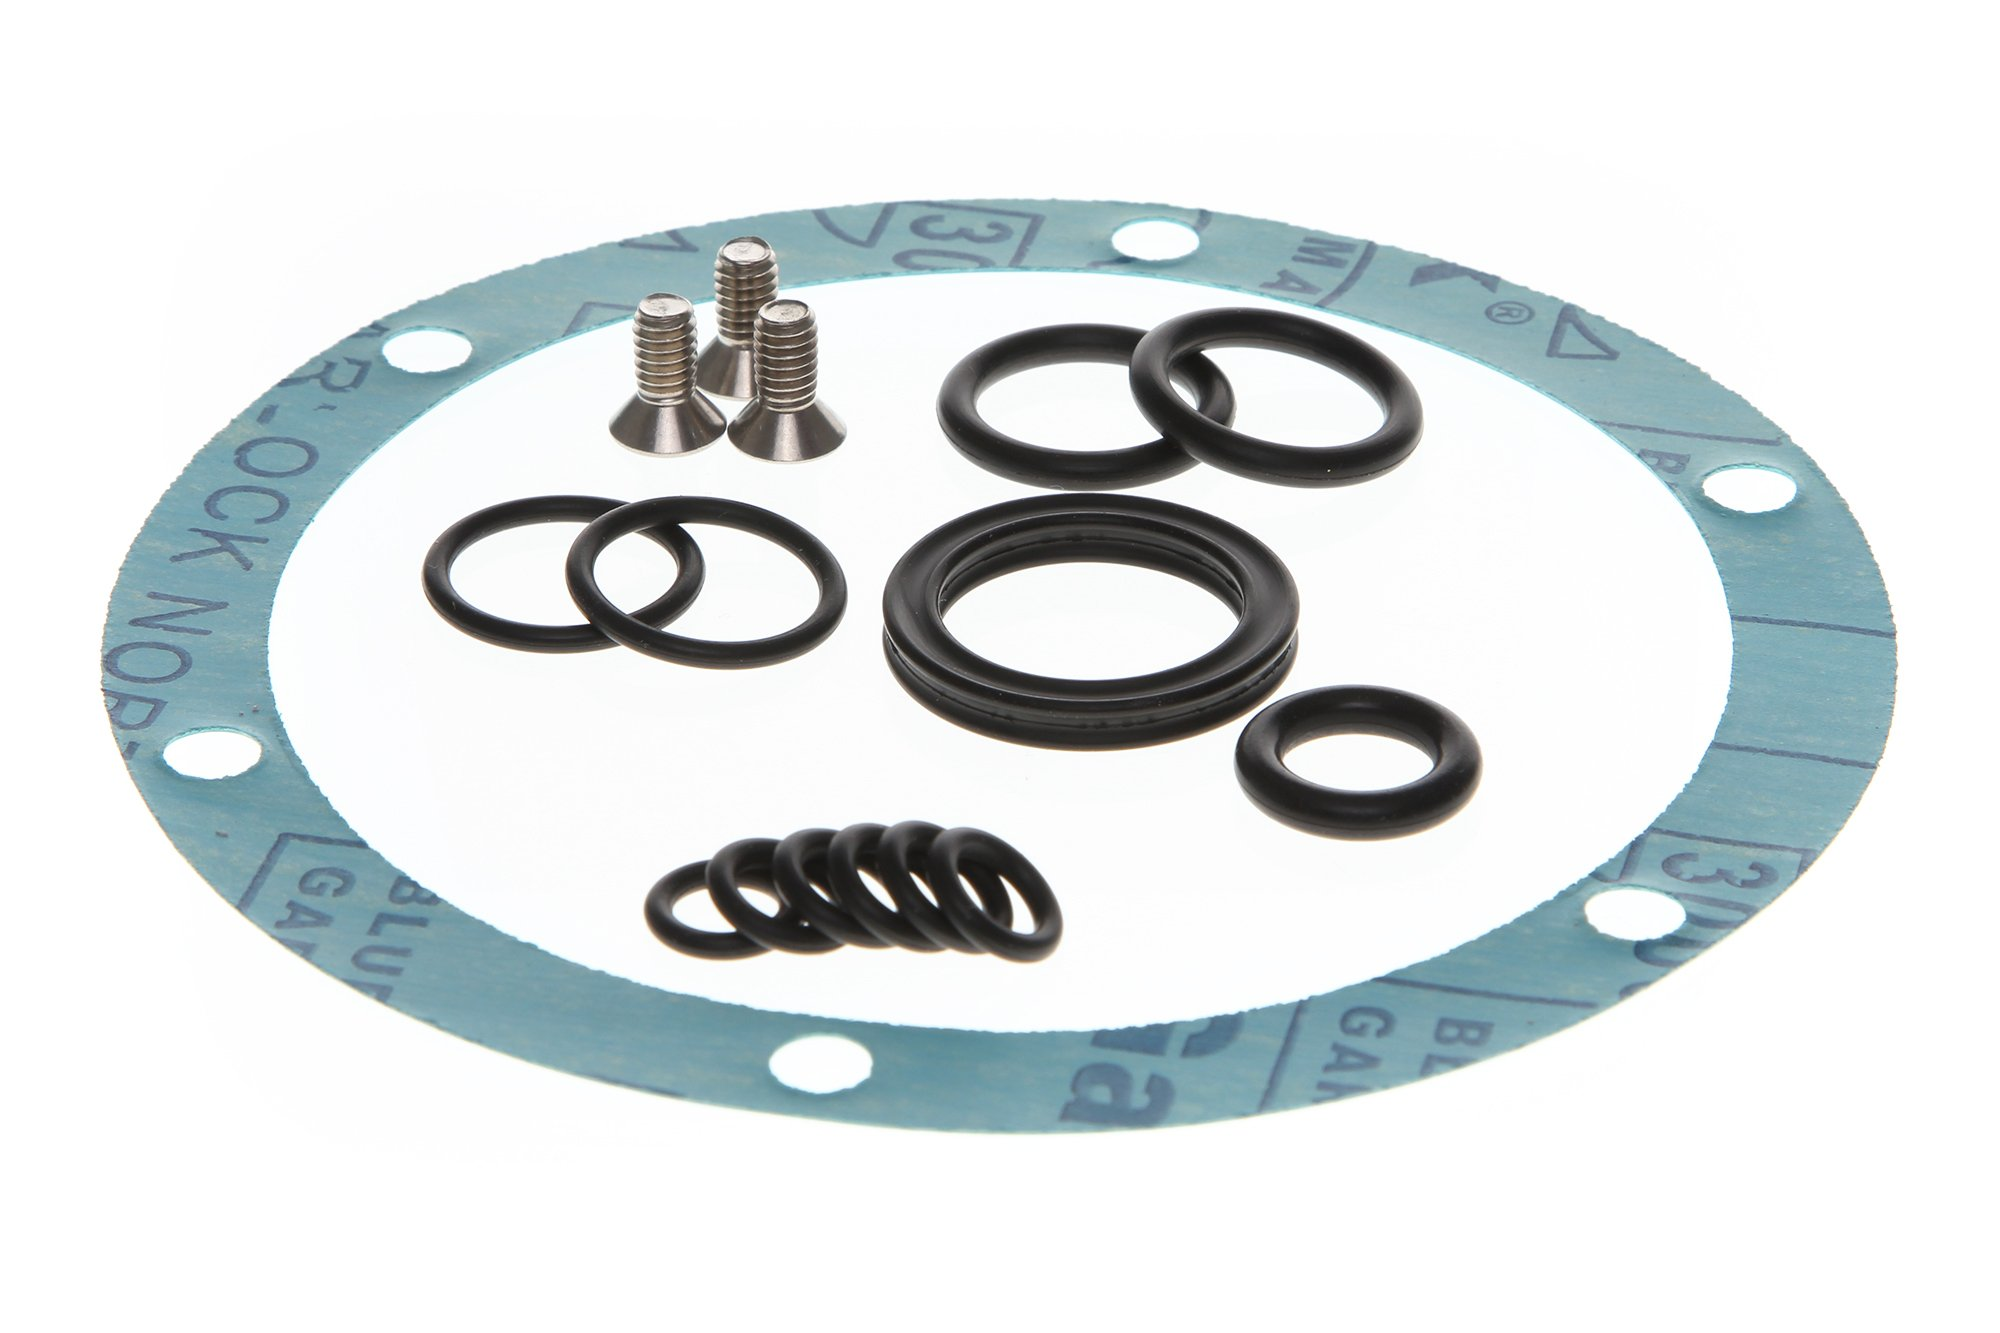 Hydraulic Helm Seal Kit Replaces HS5176 by Replacement Kits